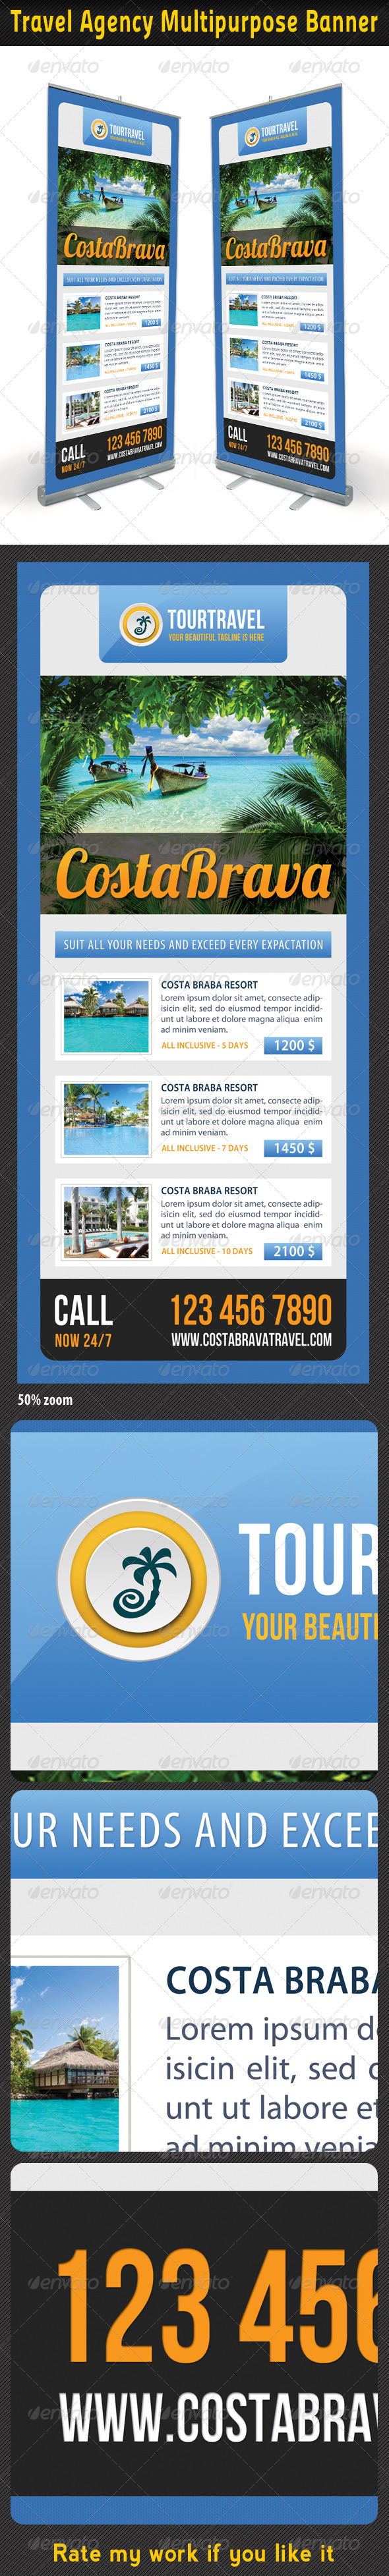 Travel Agency Banner Template 05 - Signage Print Templates